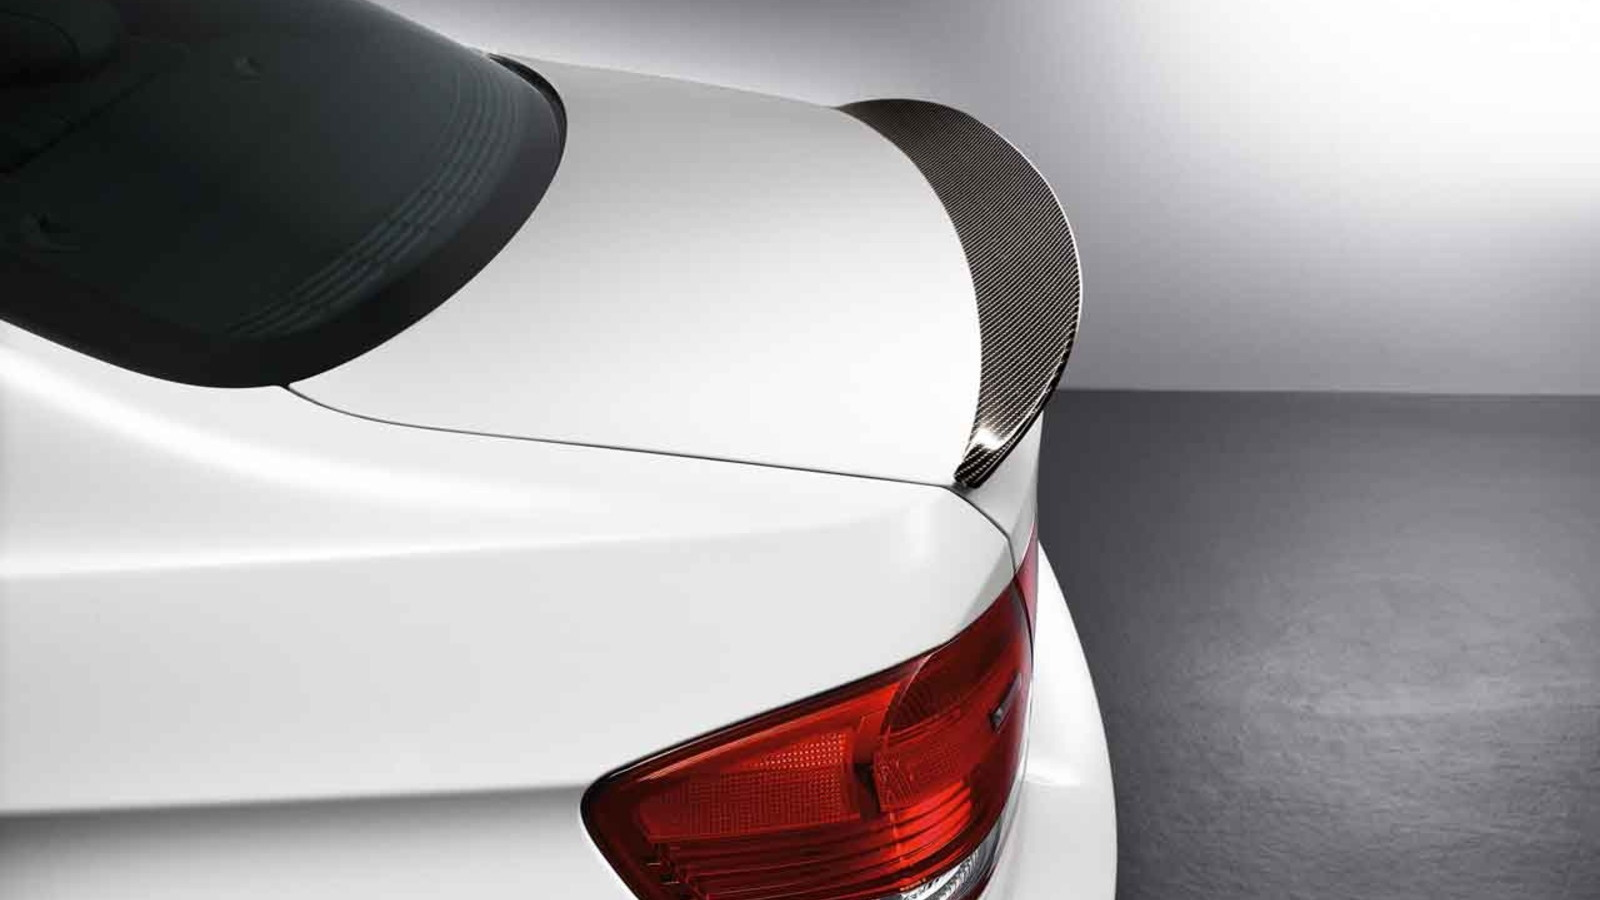 2011 BMW M3 carbon fiber aero accessories